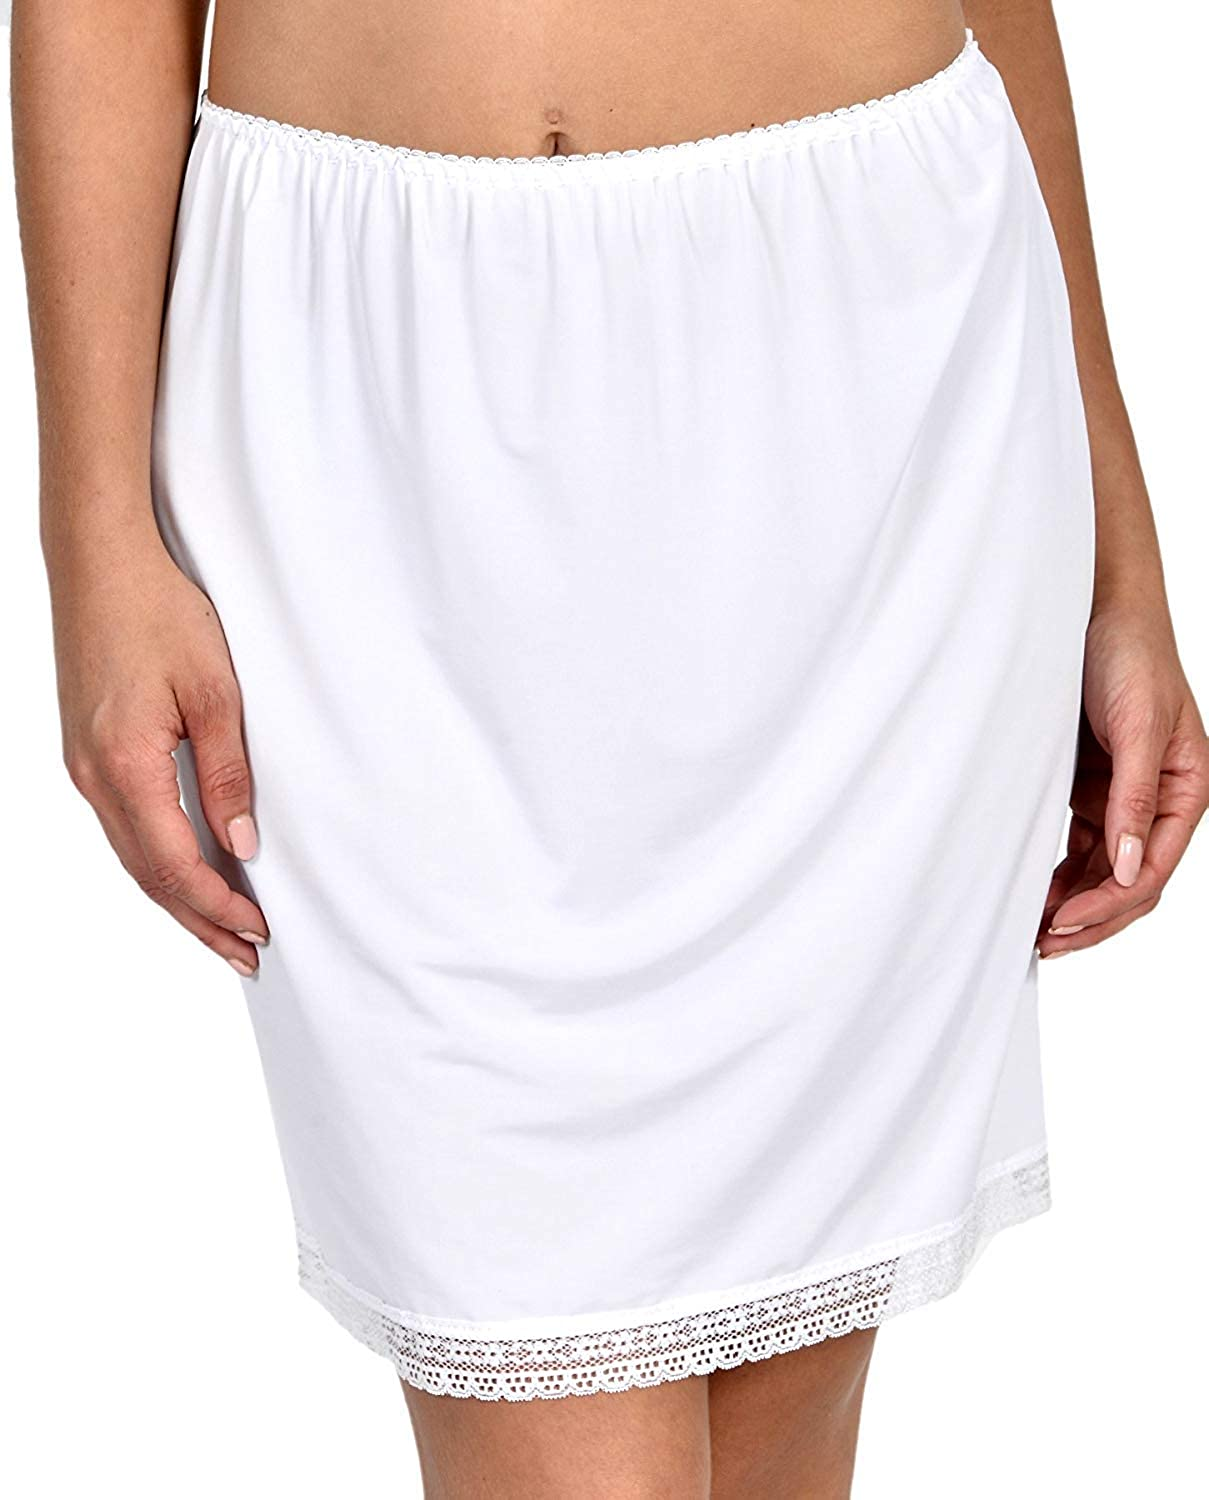 Patricia Lingerie Womens Tailored Half Slip with Stretch